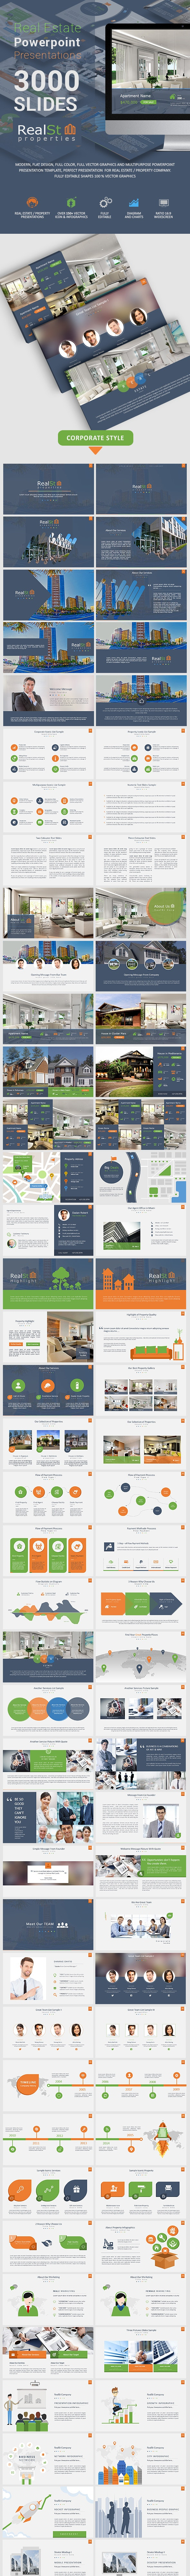 RealSt Property - Powerpoint Presentations - PowerPoint Templates Presentation Templates